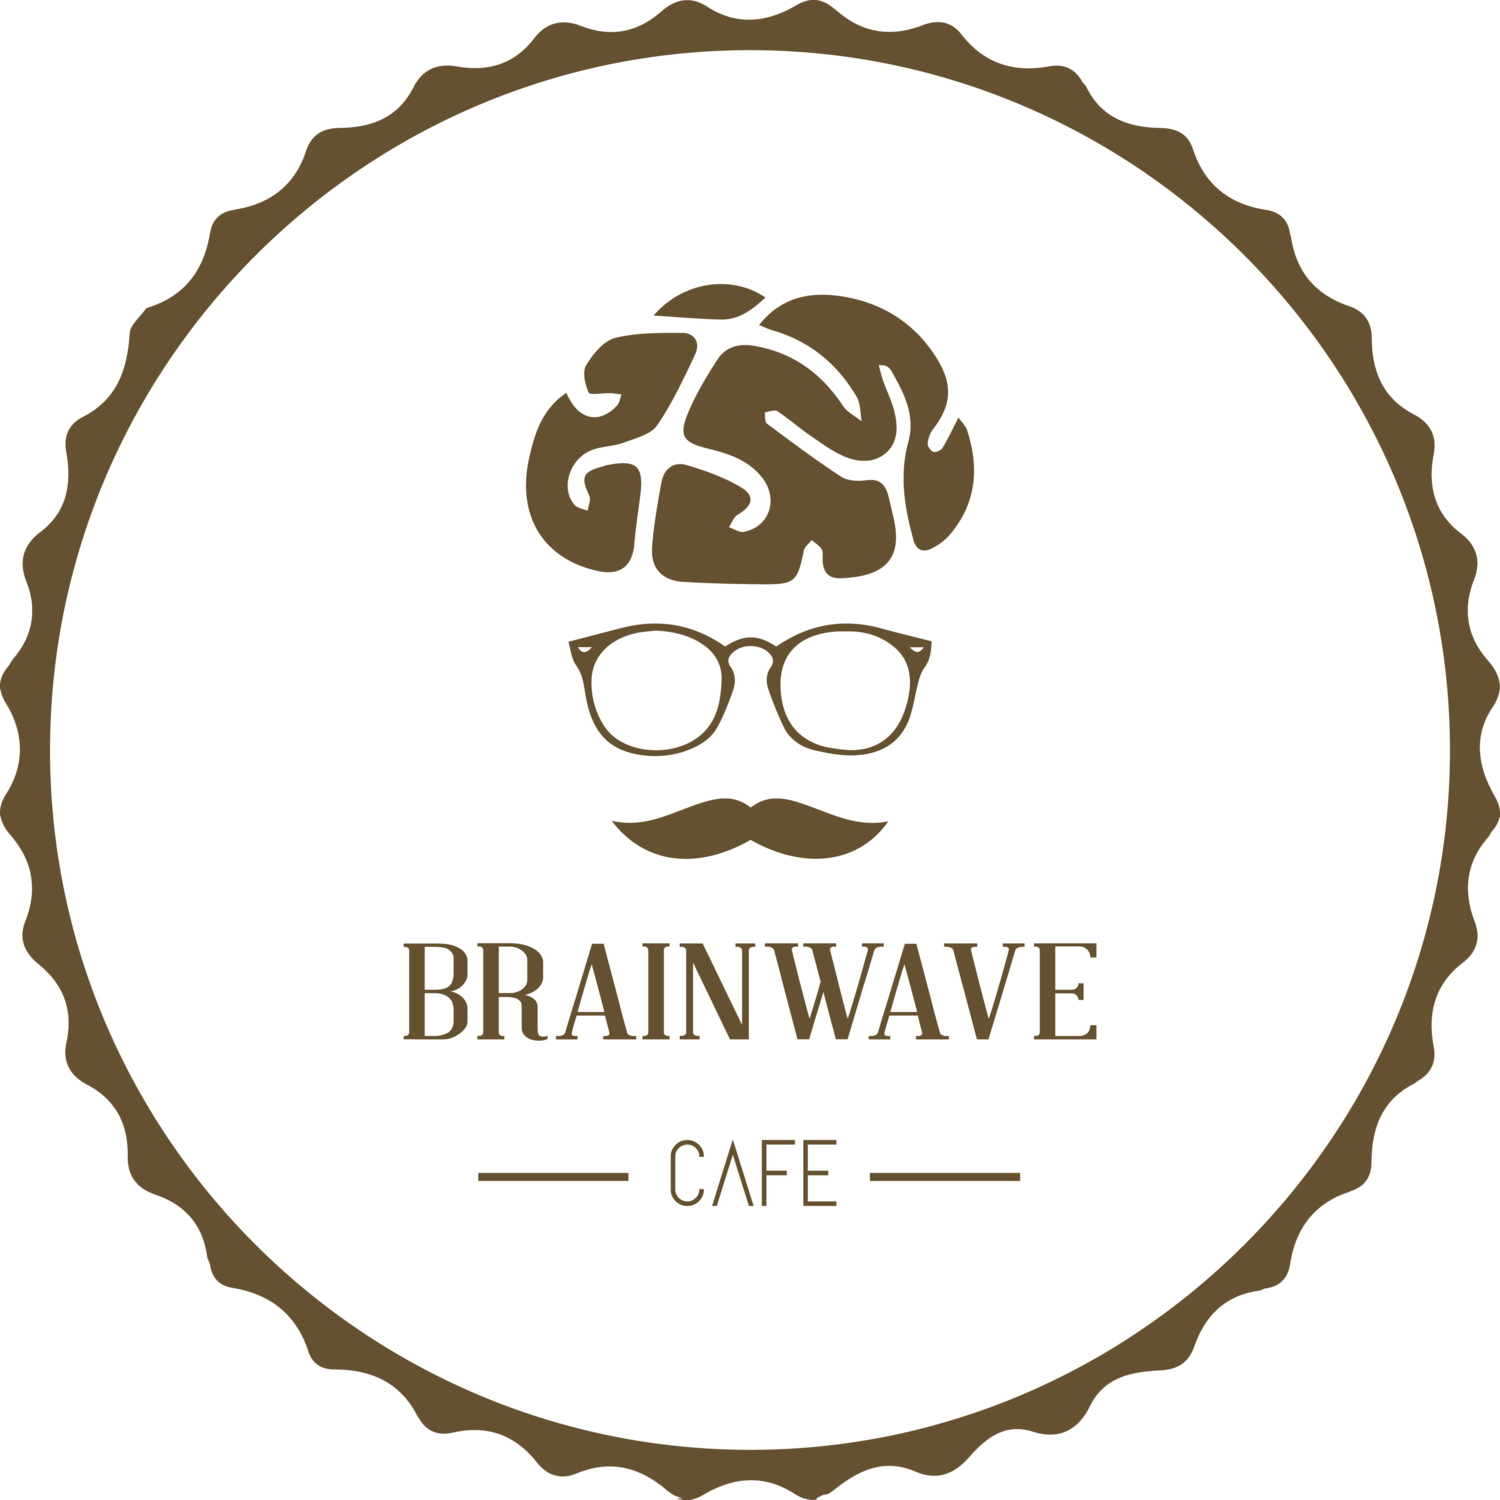 Brainwave Cafe